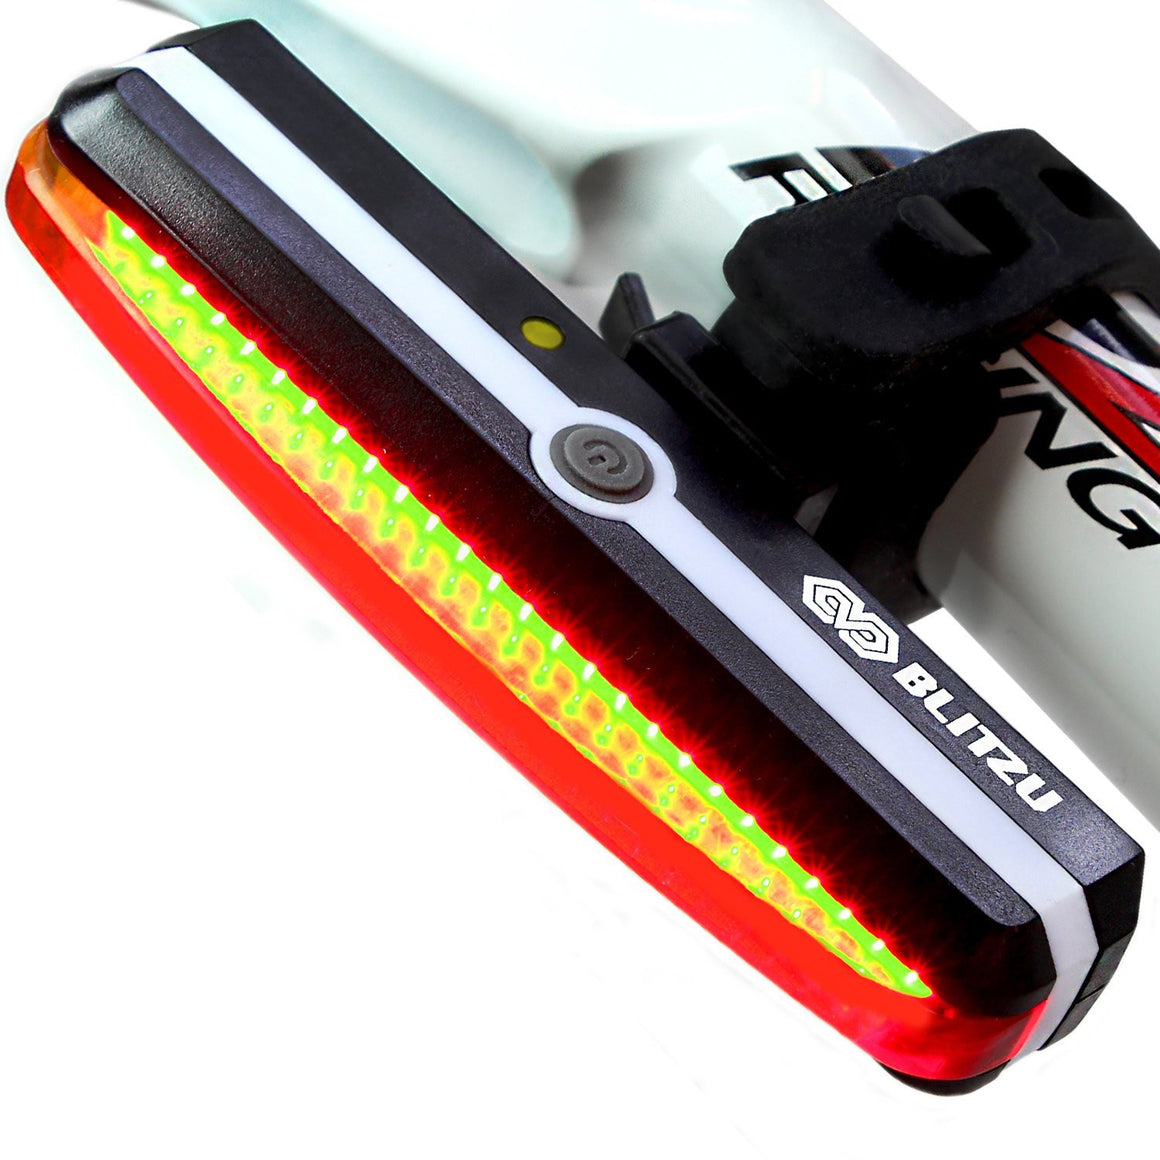 Rechargeable Bicycle Tail Light. Red High Intensity Rear LED Accessories Fits On Any Road Bikes, Helmets.